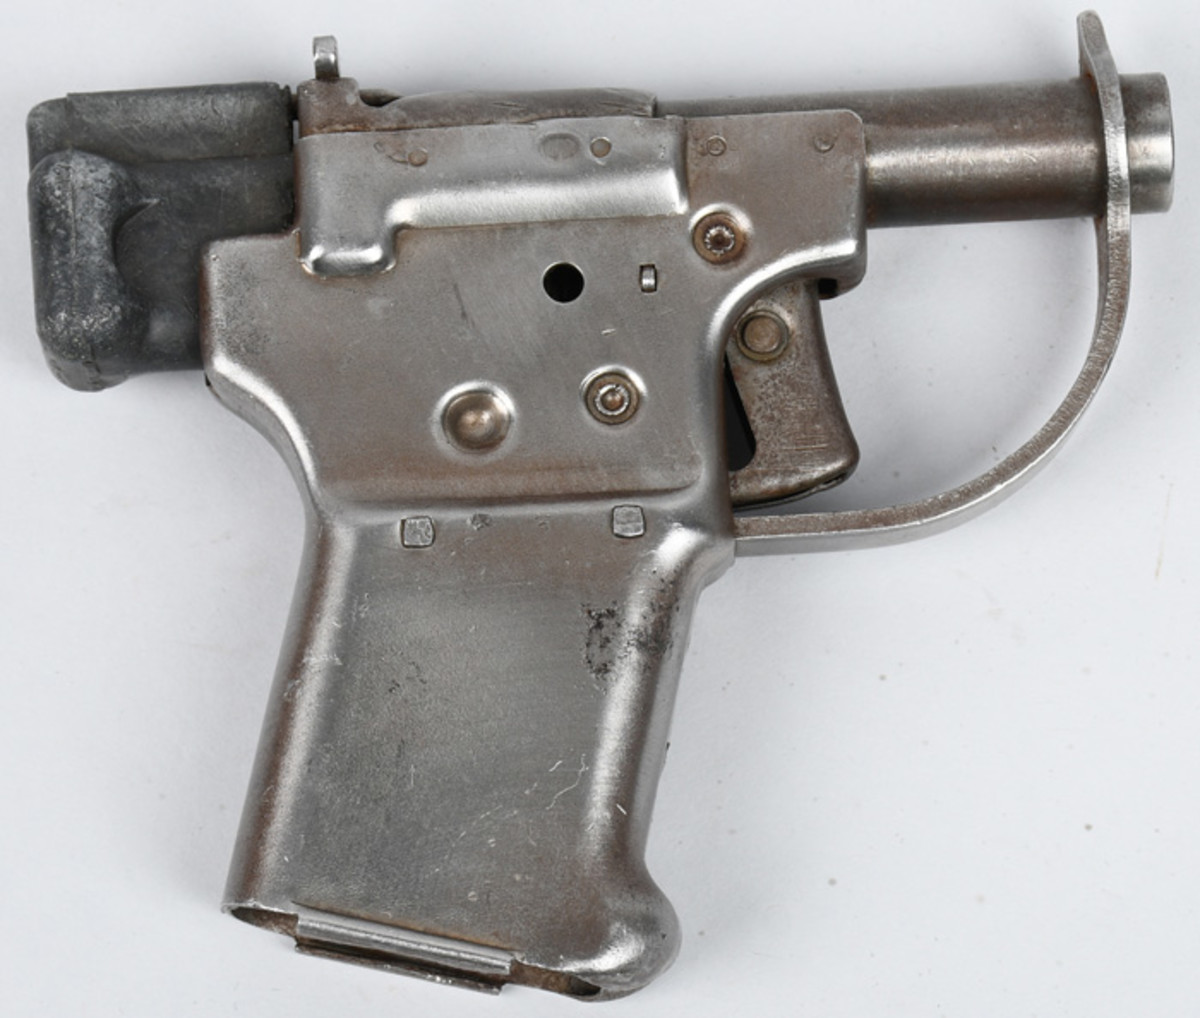 US-made Model FP-45 Liberator .45-caliber single-shot pistol, produced solely in 1942, intended for use behind enemy lines by resistance fighters. Sold for $2,040 against an estimate of $800-$1,200